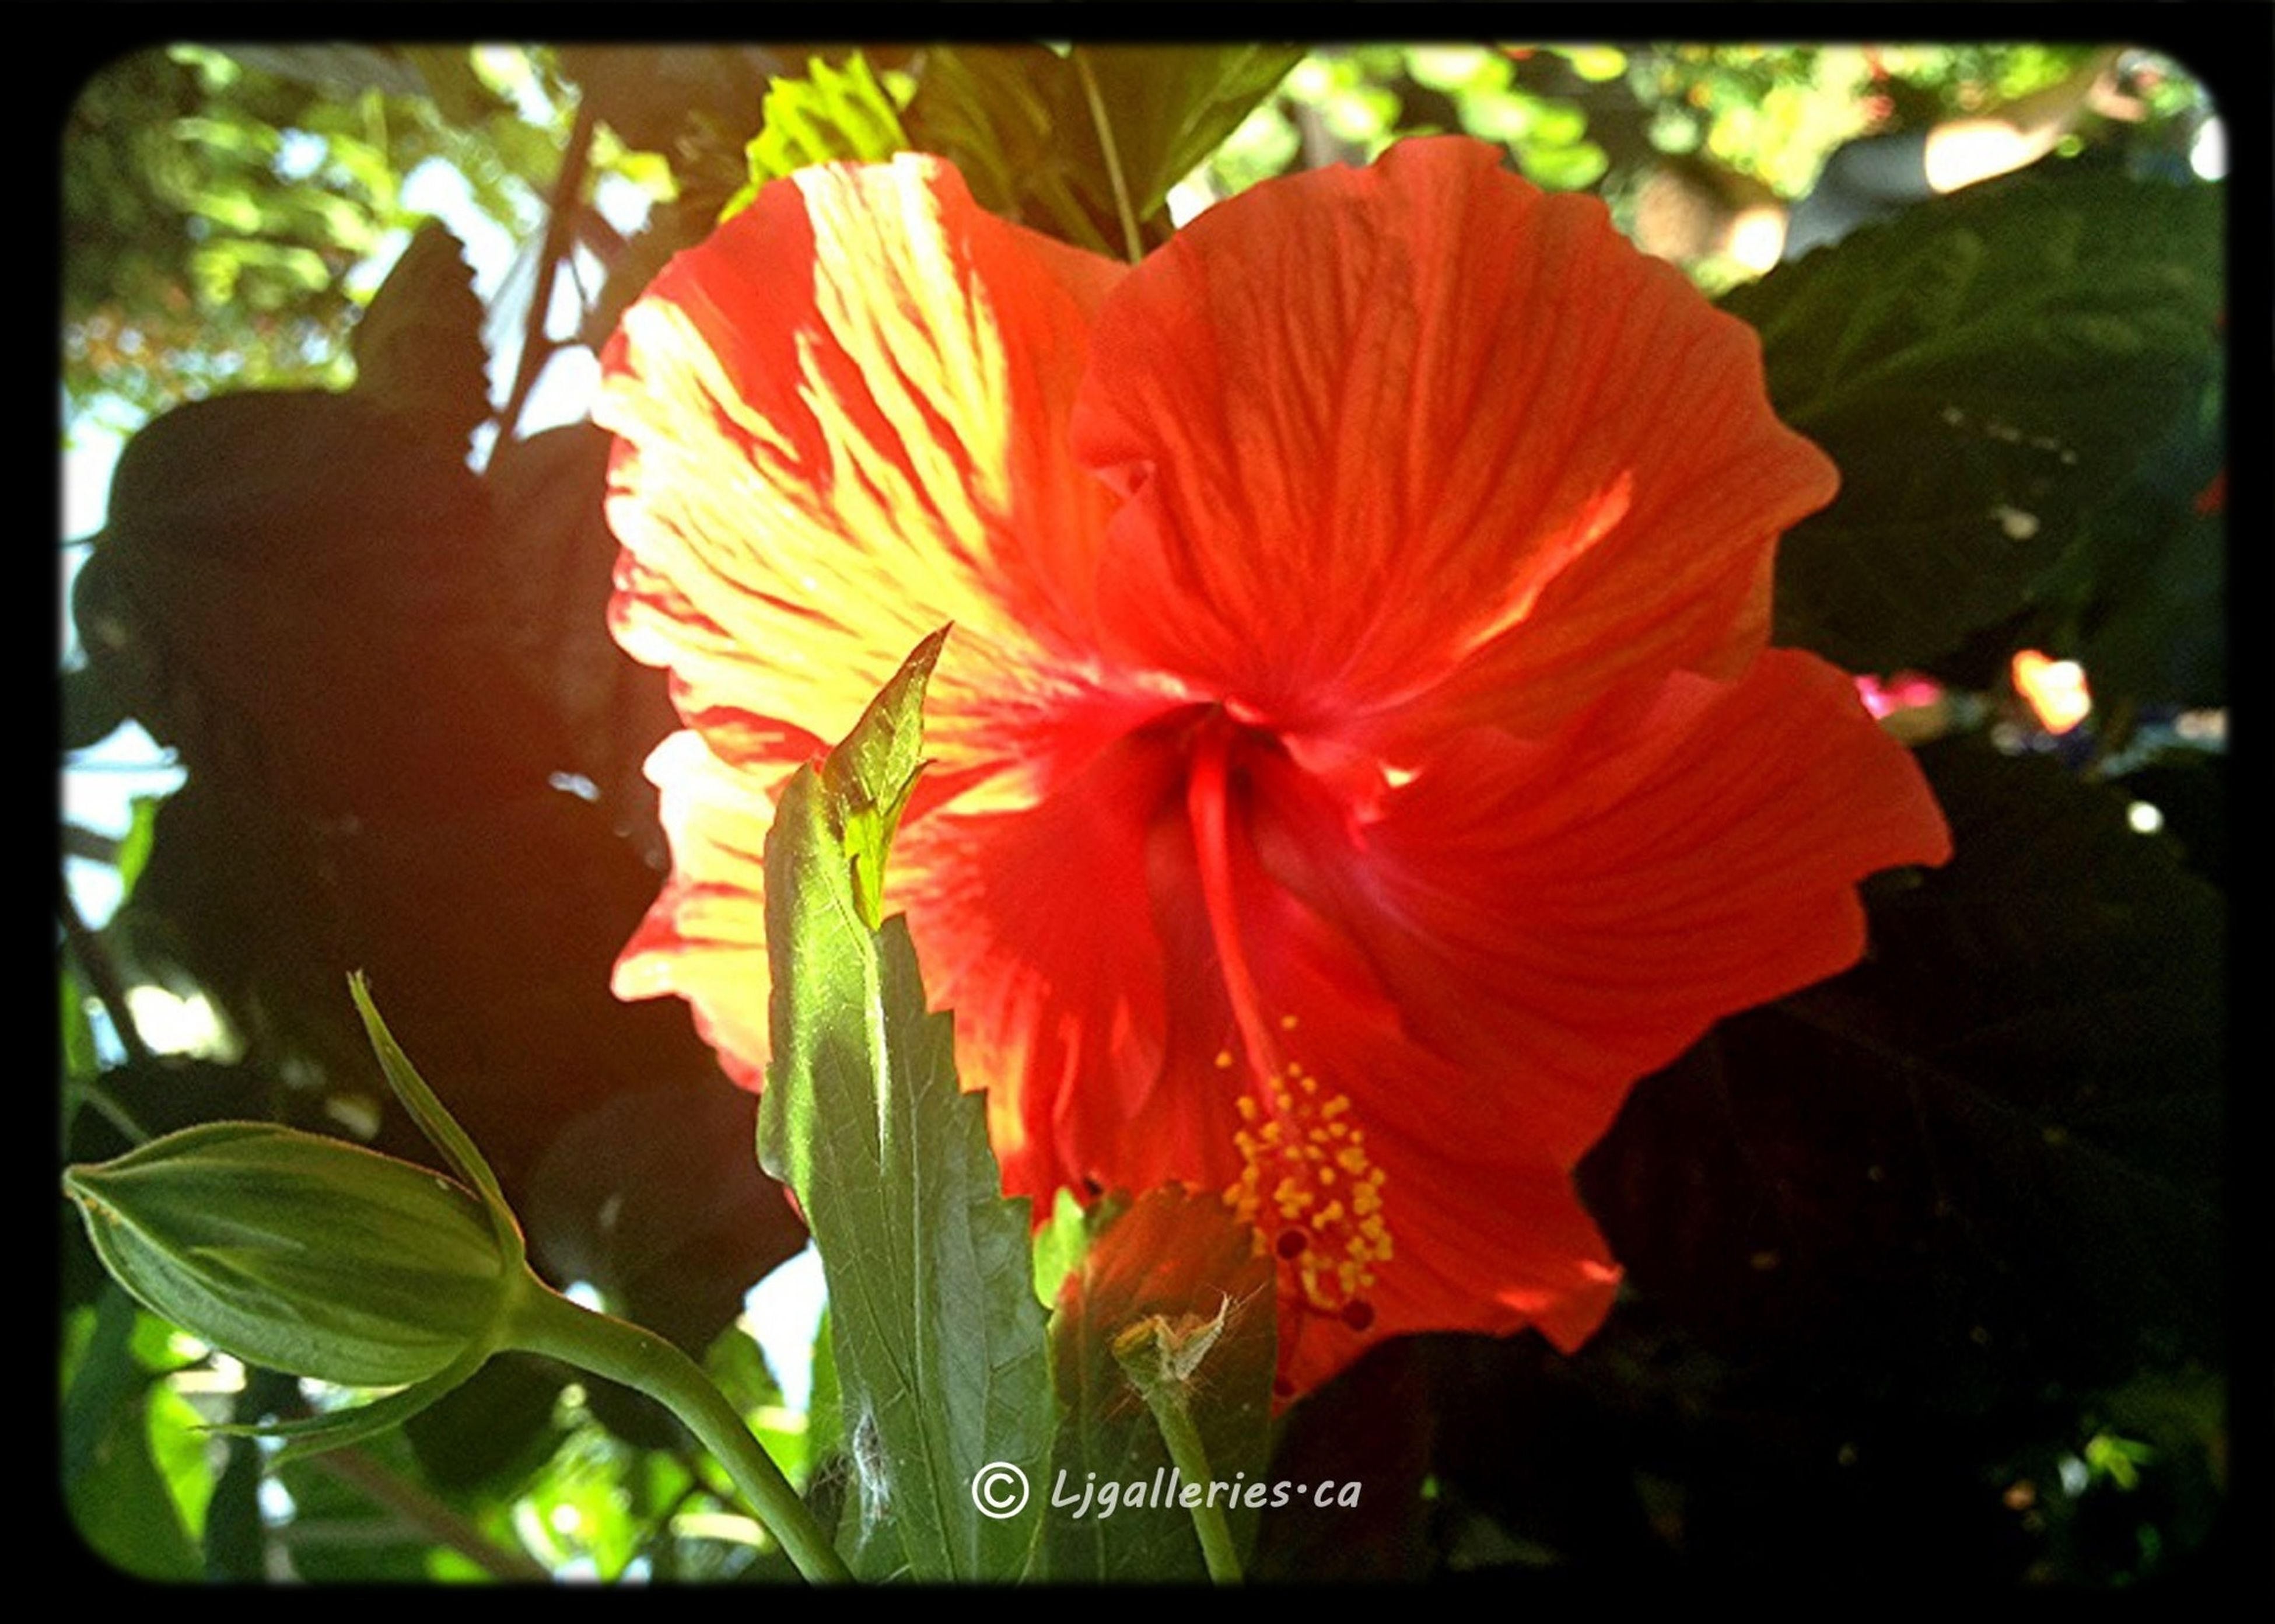 flower, petal, freshness, flower head, transfer print, fragility, growth, beauty in nature, single flower, close-up, auto post production filter, blooming, nature, plant, red, leaf, focus on foreground, hibiscus, in bloom, pollen